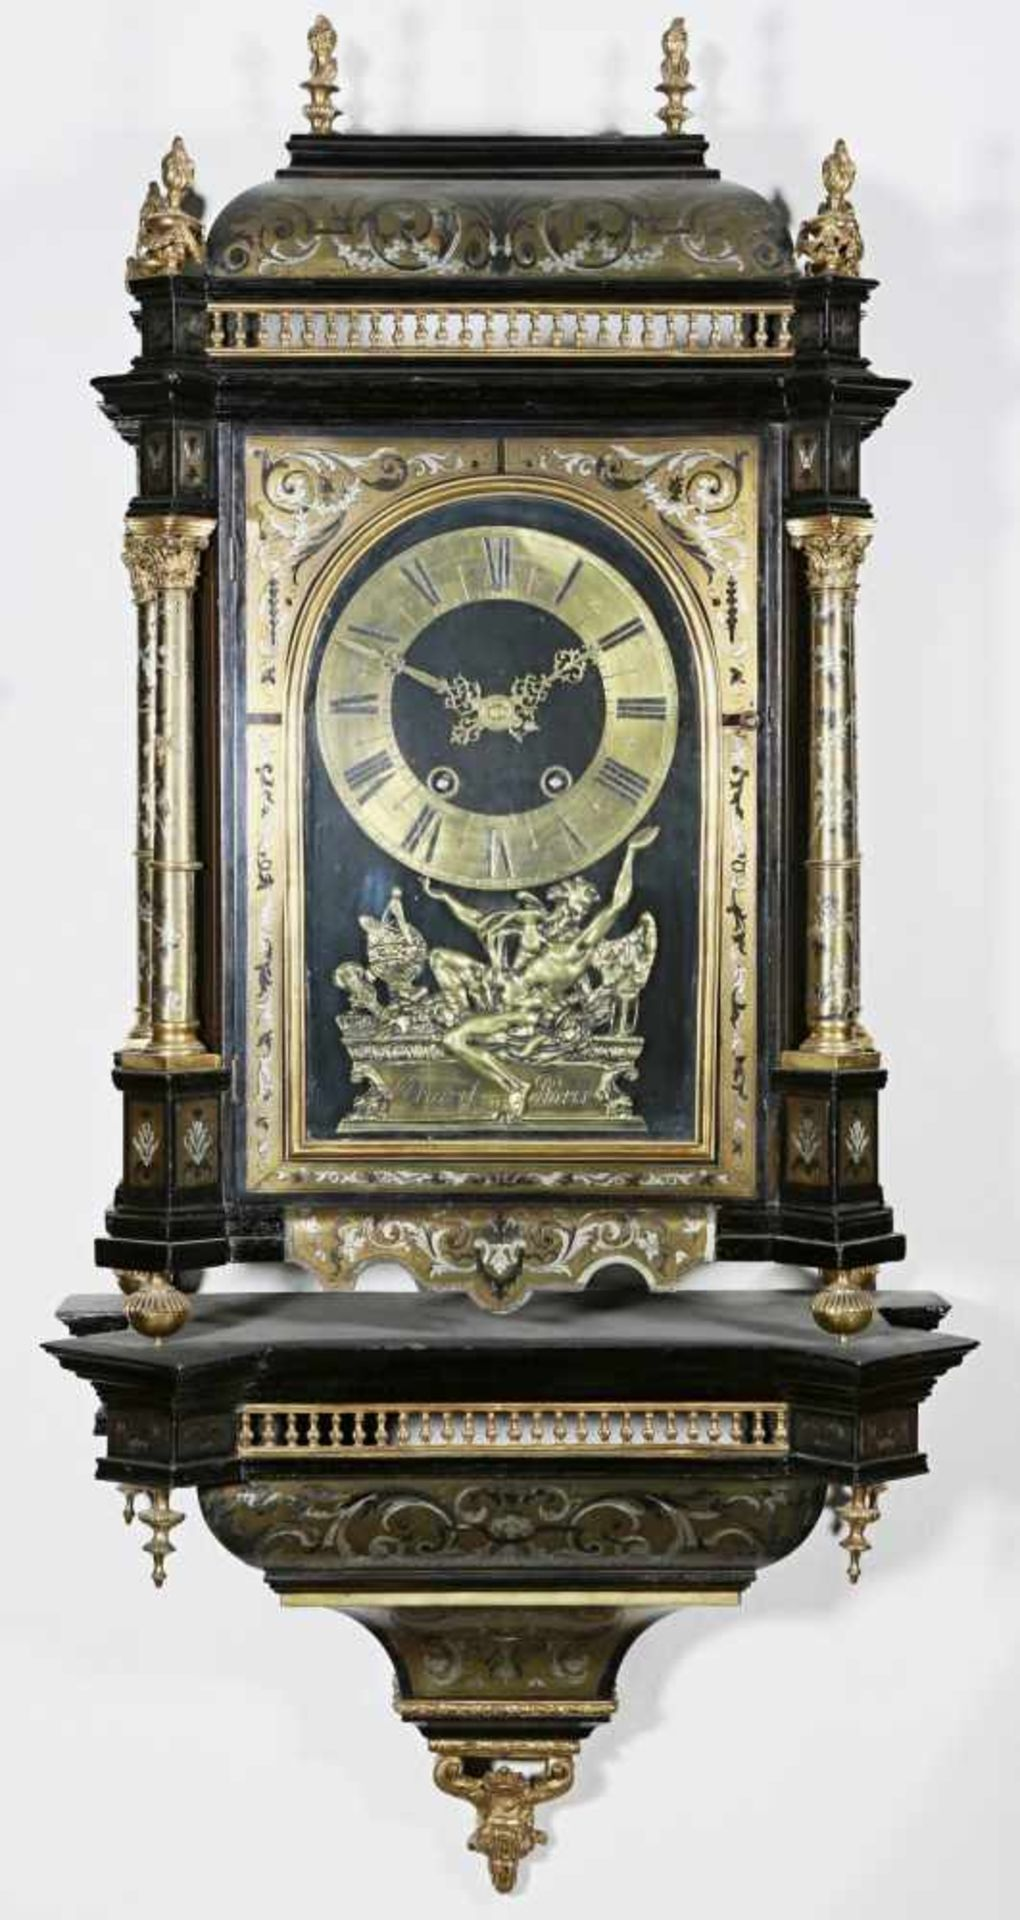 Los 25 - French console clock Thuret Paris France, Paris, end of 18th century/early 19th century, dial